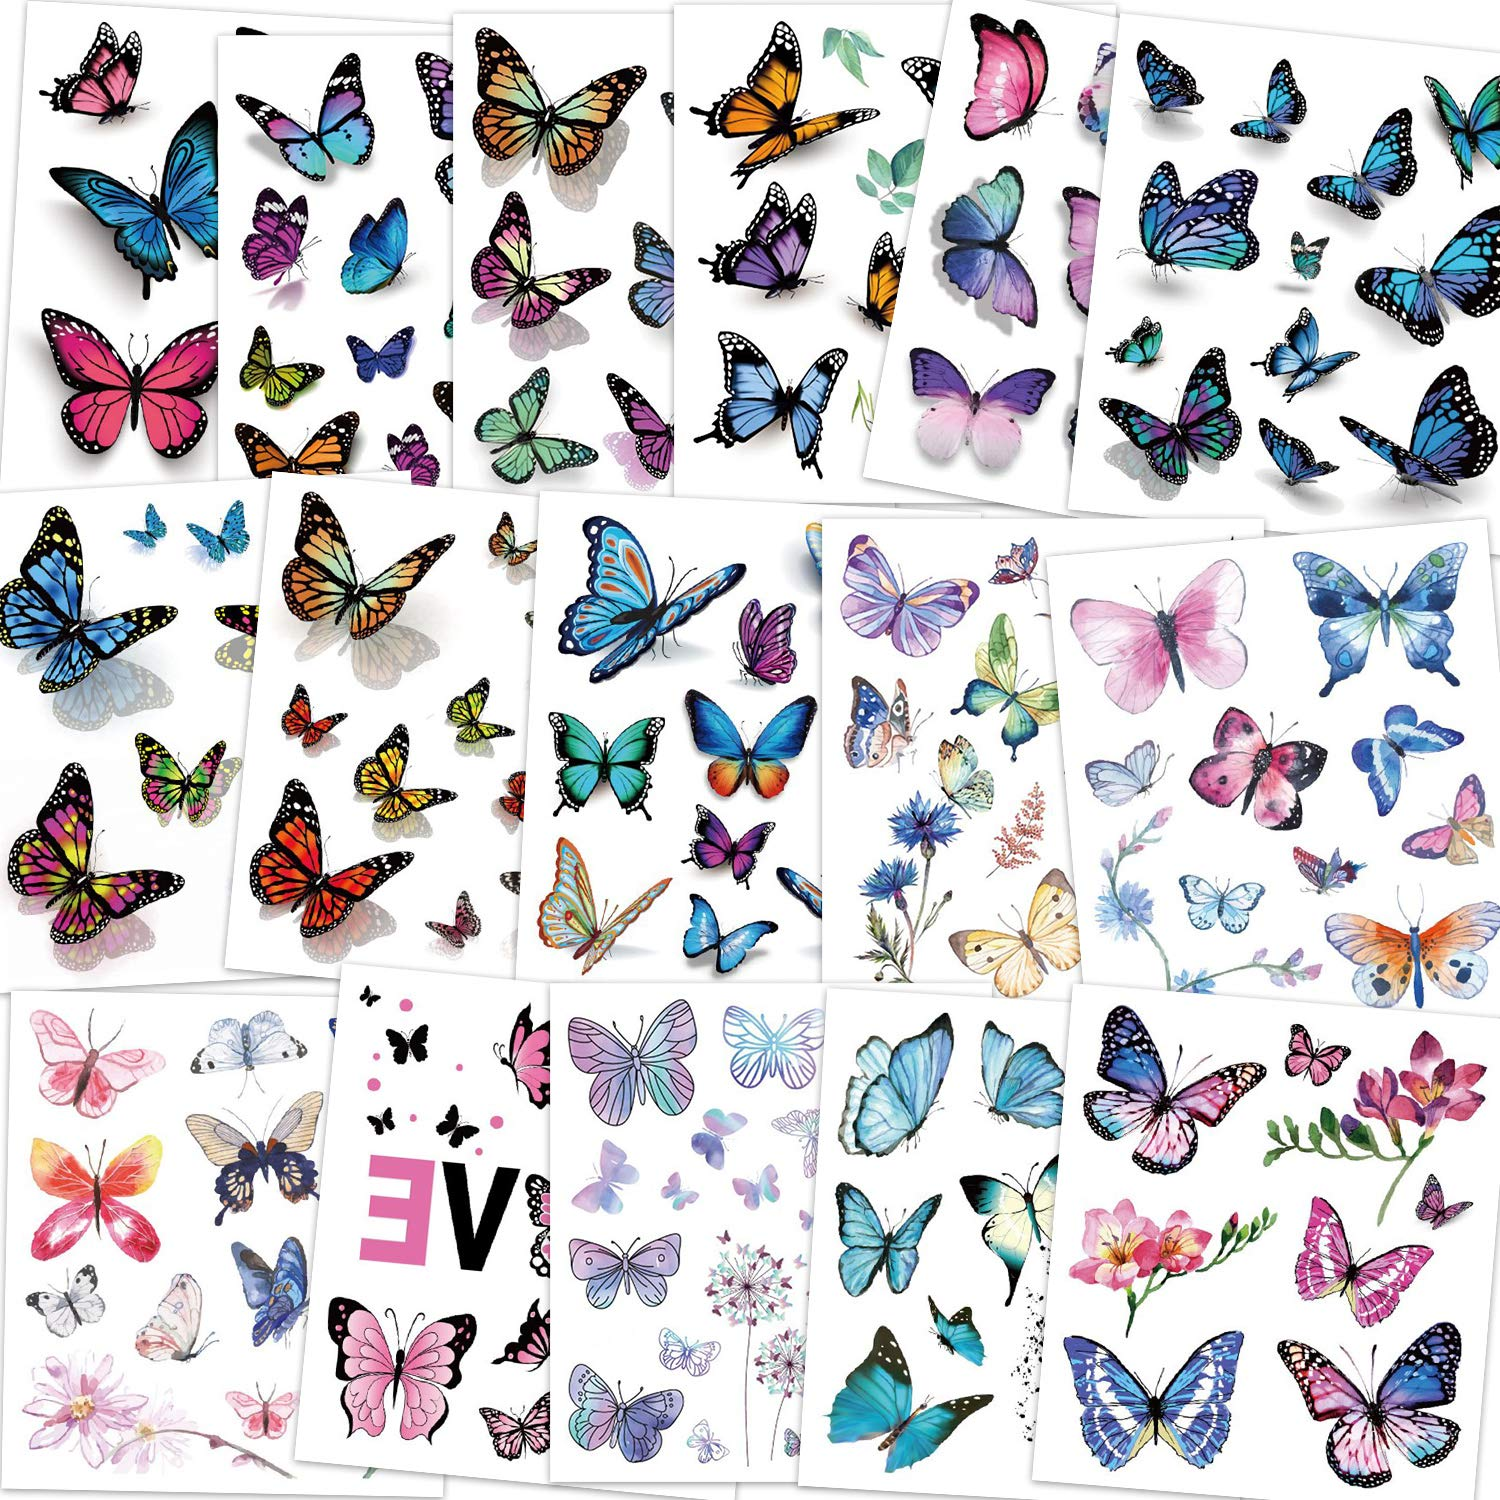 Fl... Fun Stickers Temporary Tattoo Kids Party Bag Fillers 6 Sheets Butterflies